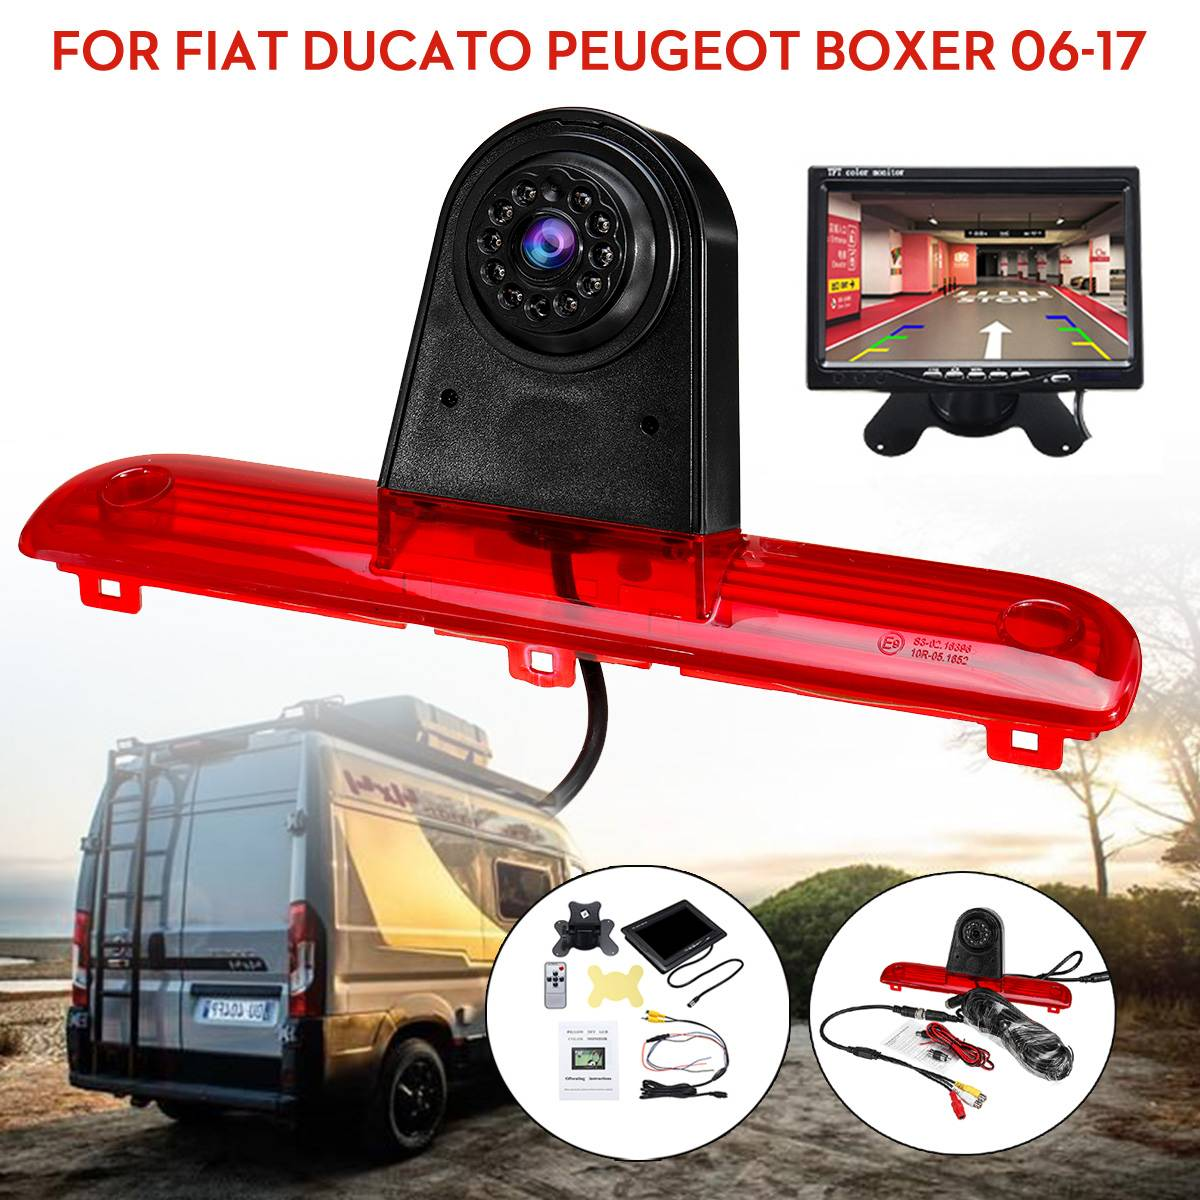 CCD HD Car Rear View Camera Reserve Backup Parking Coms PAL Brake Light Night Vision For Fiat Ducato Peugeot Boxer 2006-2017